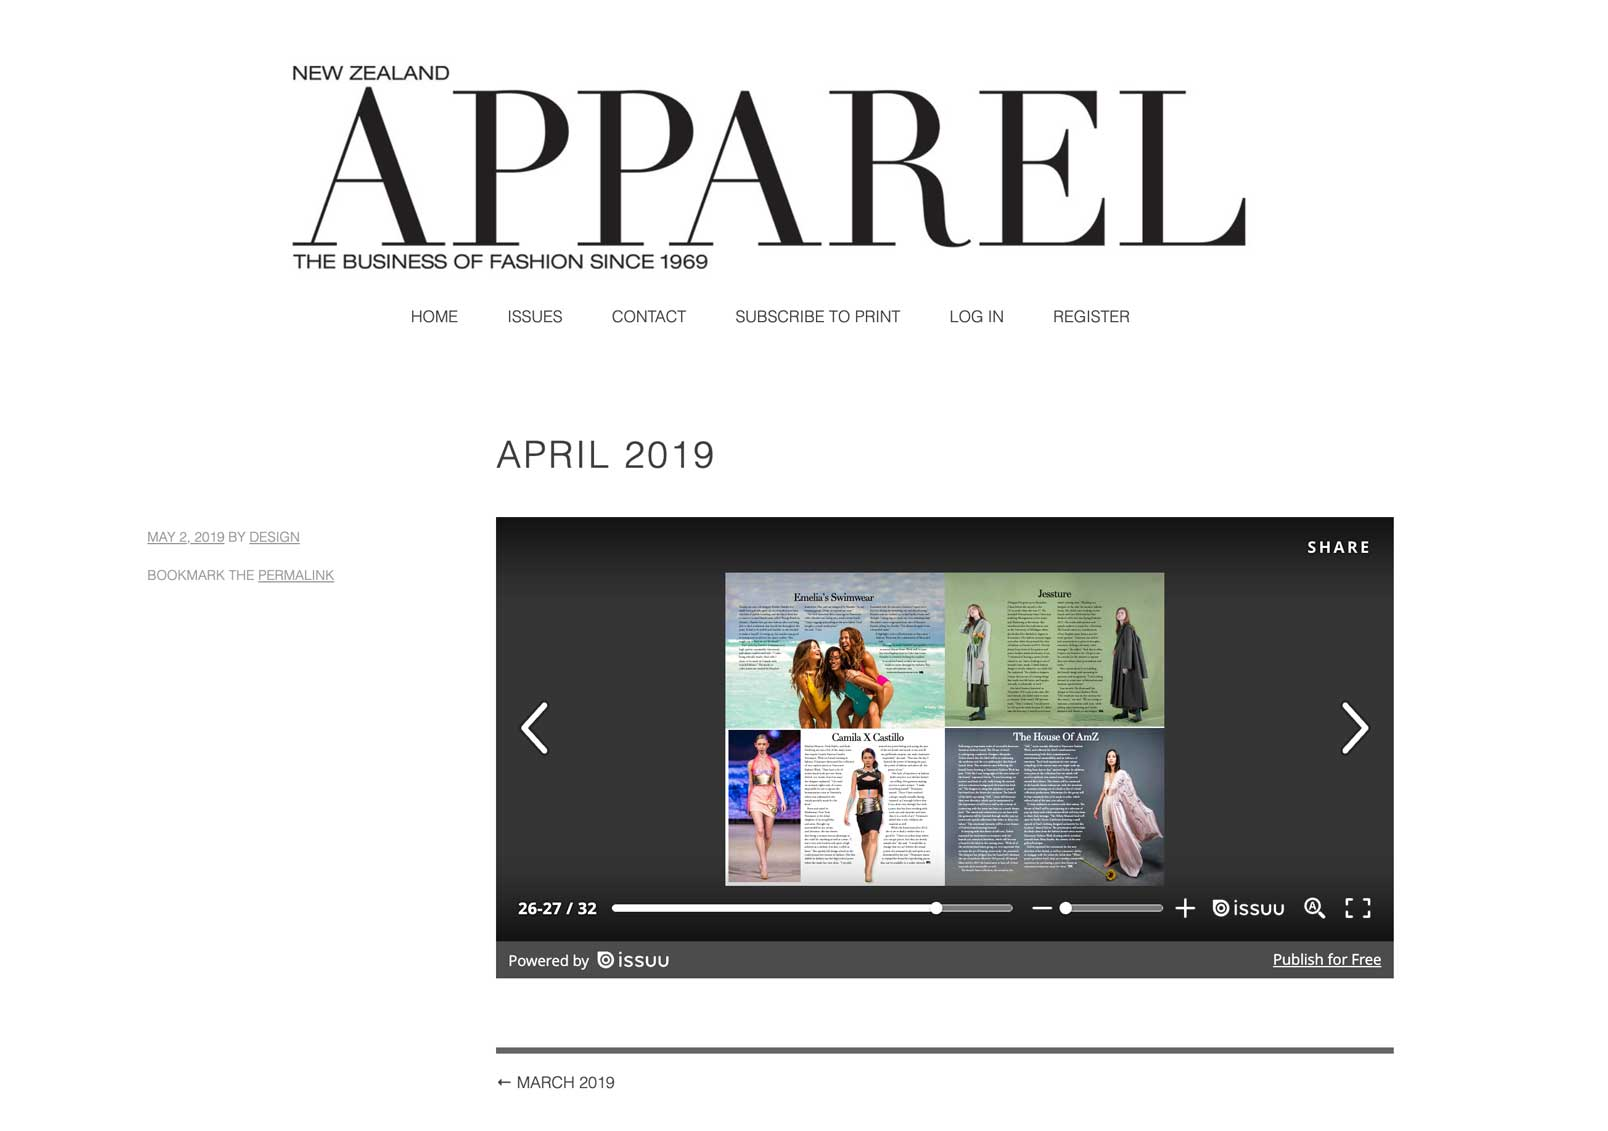 New Zealand Apparel | April 2019